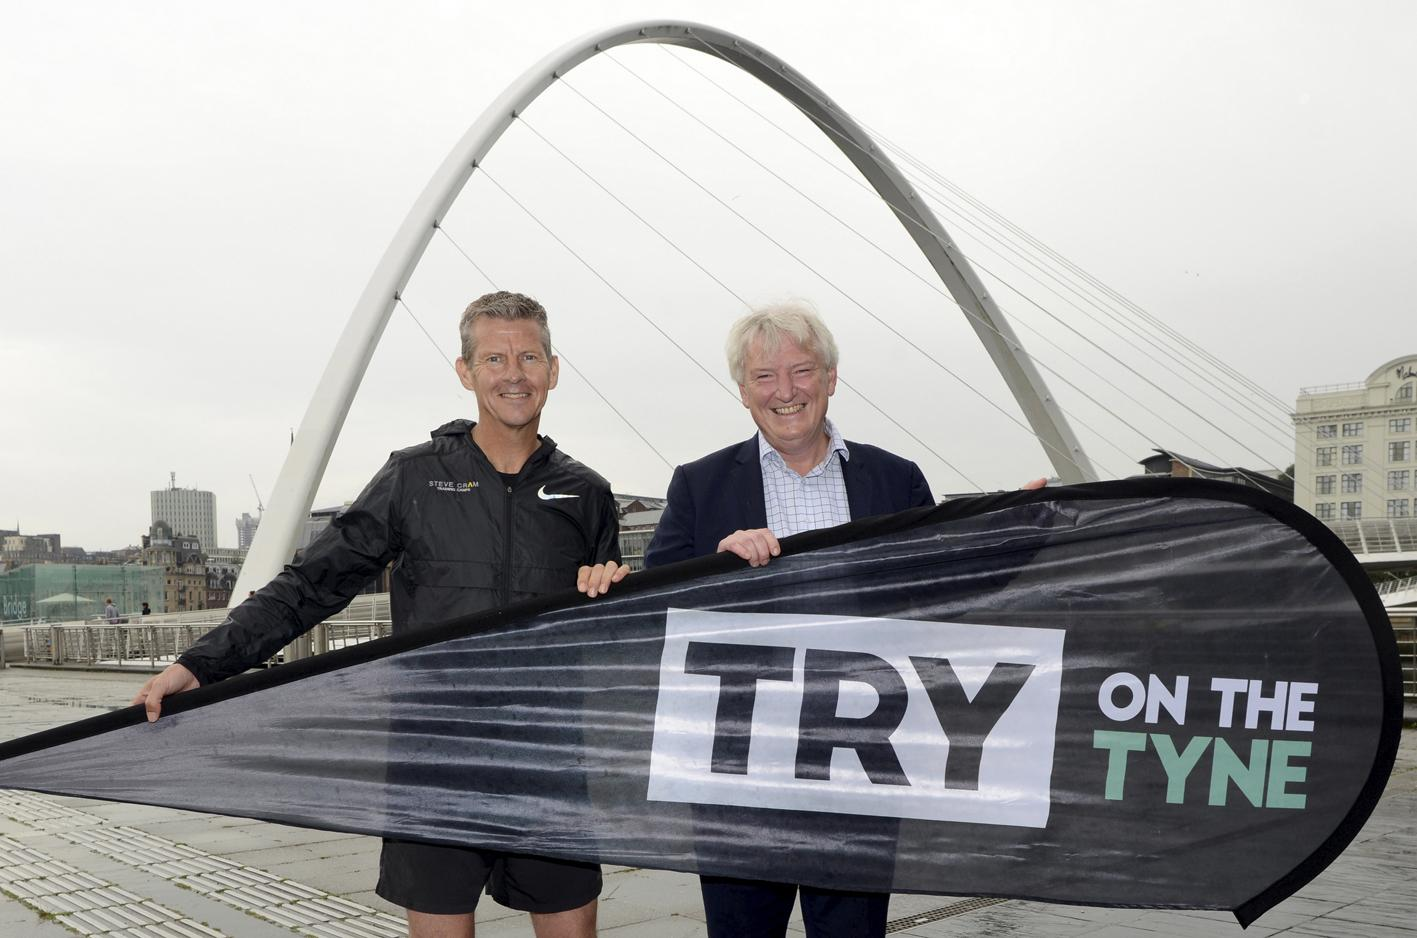 Steve Cram and Carsten Staehr of Cintra, title sponsor of TRY on the Tyne.